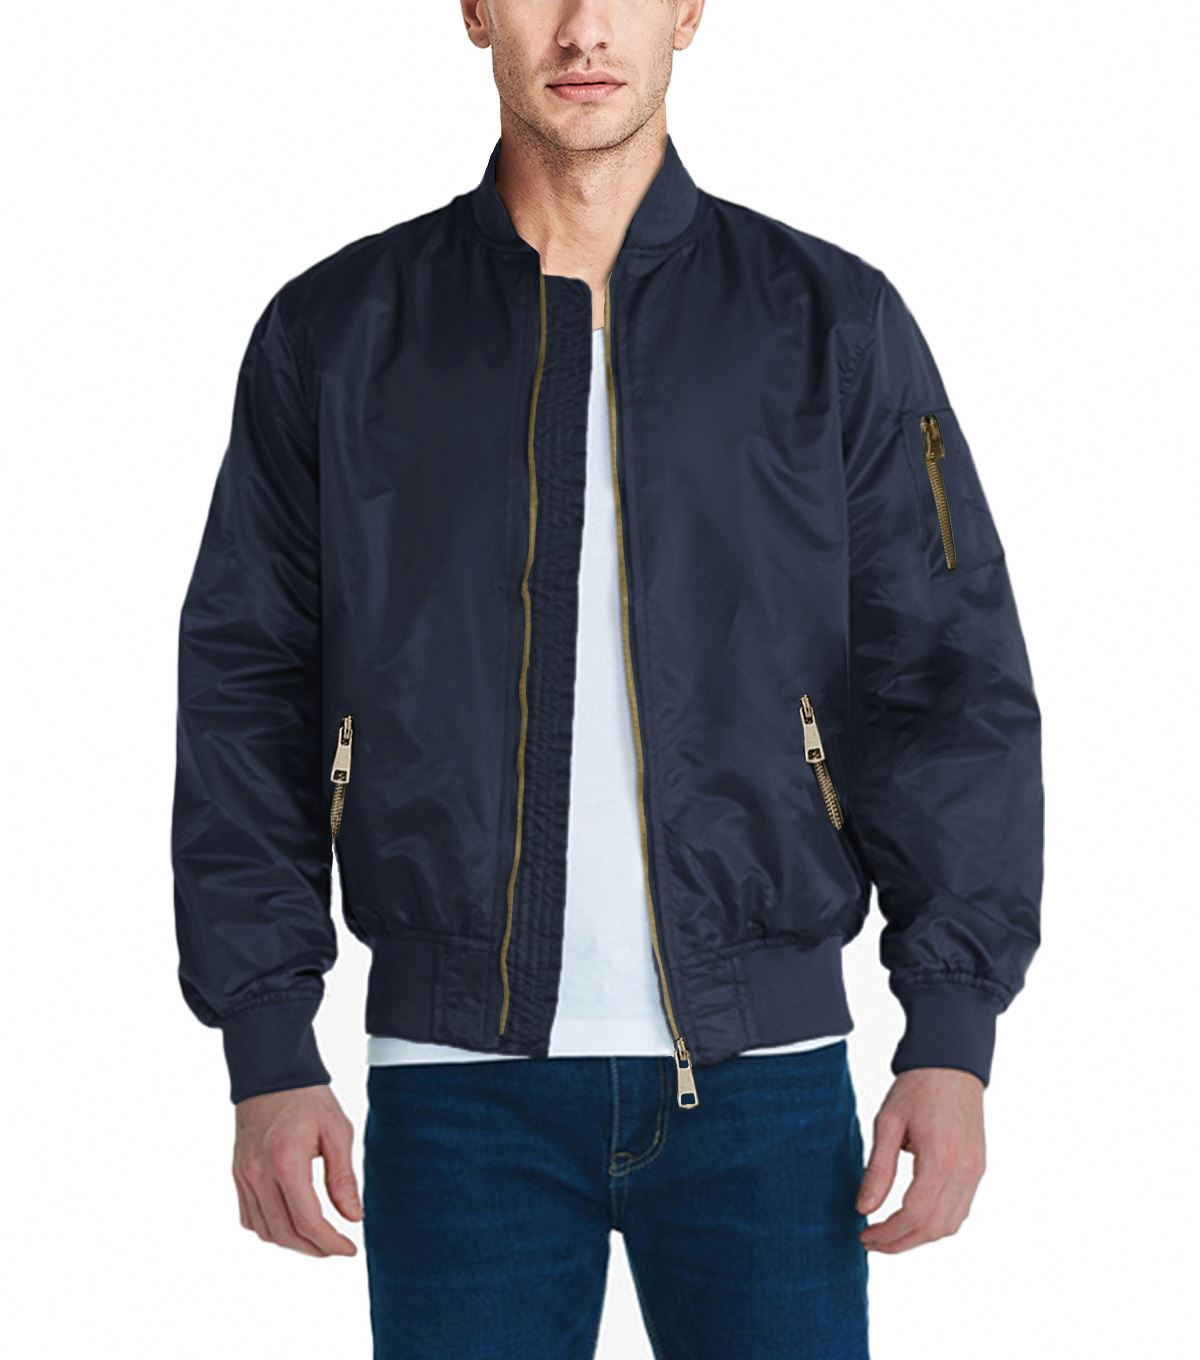 Fashion Thick Army Tactical <strong>Jacket</strong> for Men Windproof Coat Outwear Winter Mens <strong>Jackets</strong> Thichken <strong>Military</strong> <strong>Style</strong> Bomber <strong>Jackets</strong>